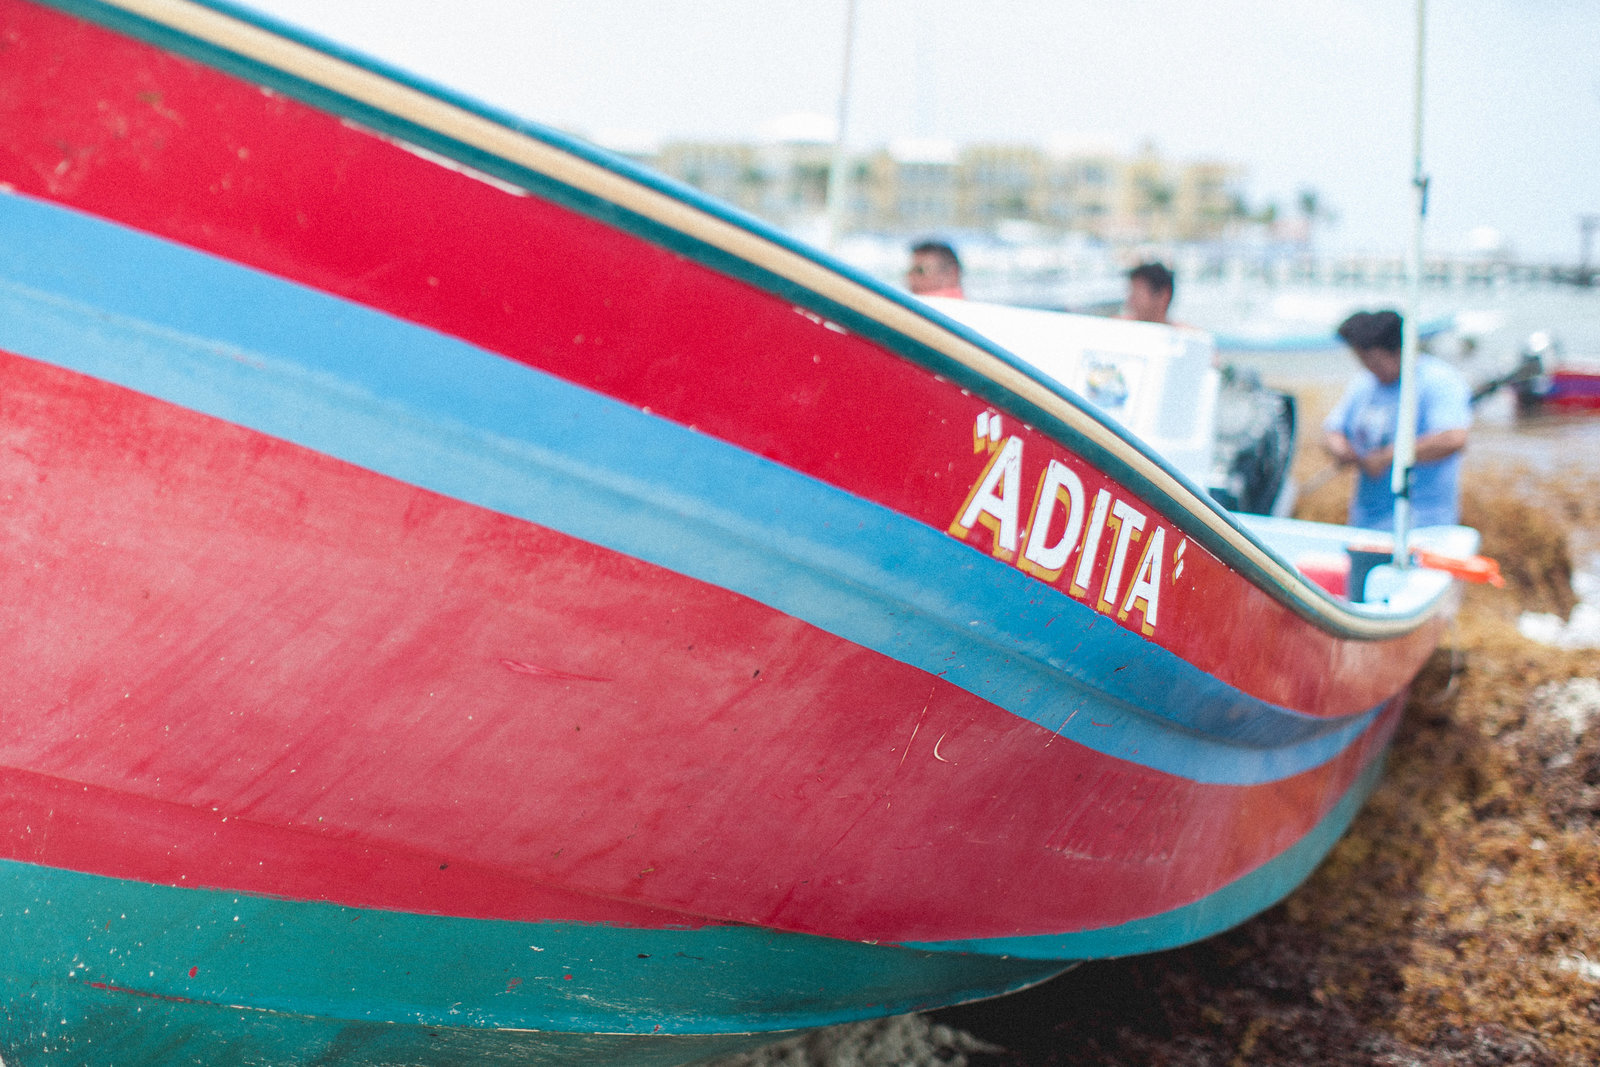 DiBlasio Photo-Mexico-9956